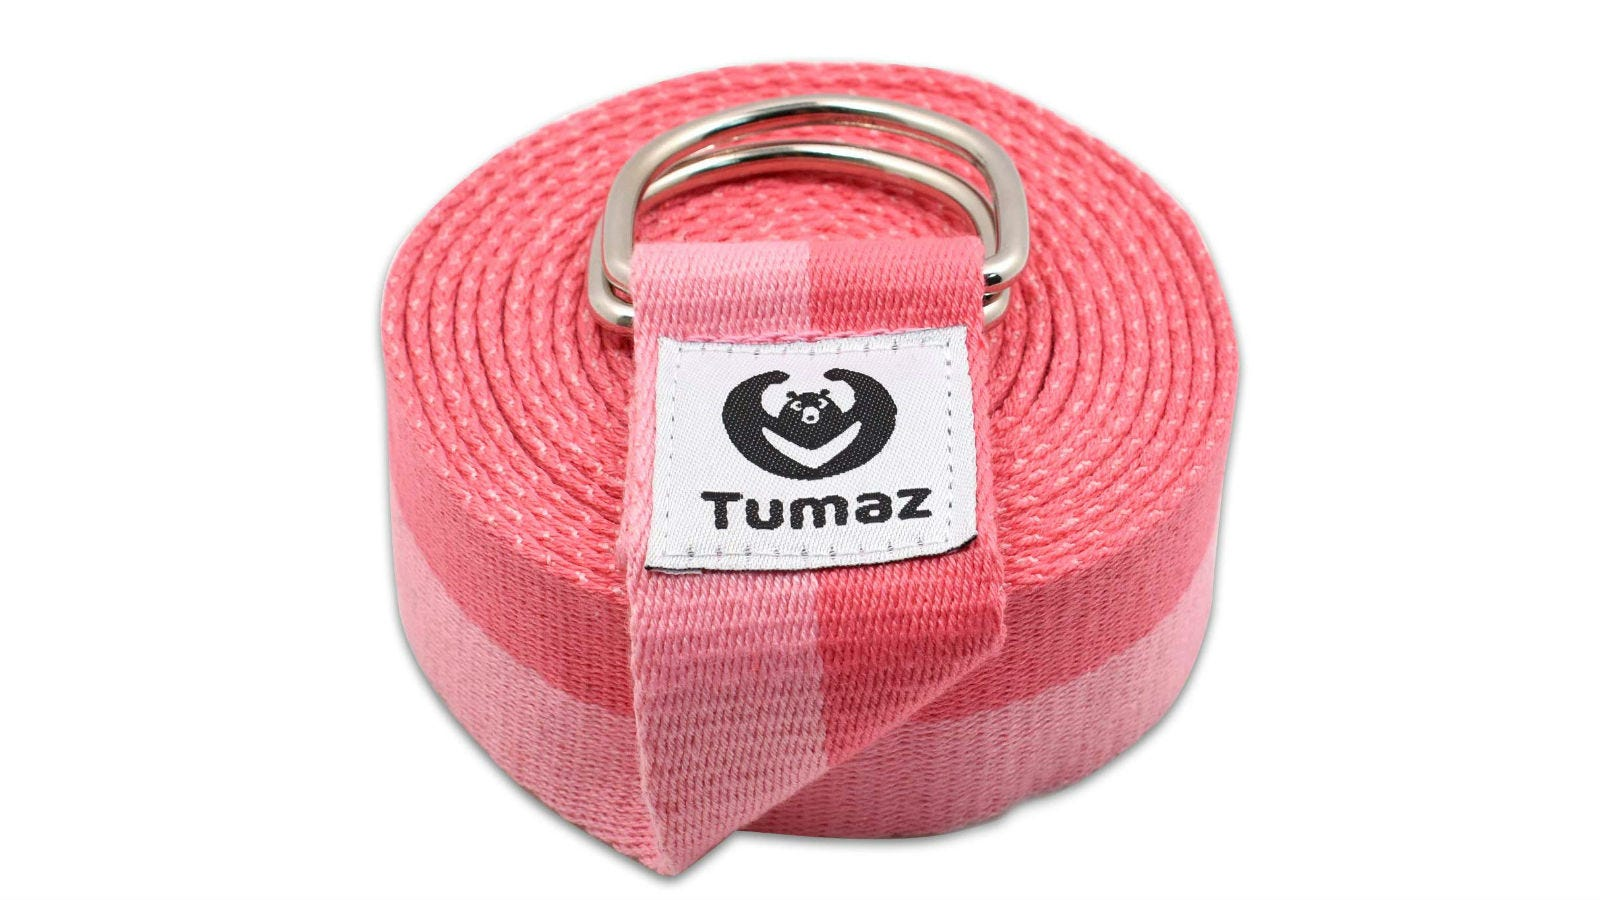 Tumaz Yoga Strap/Stretch Bands